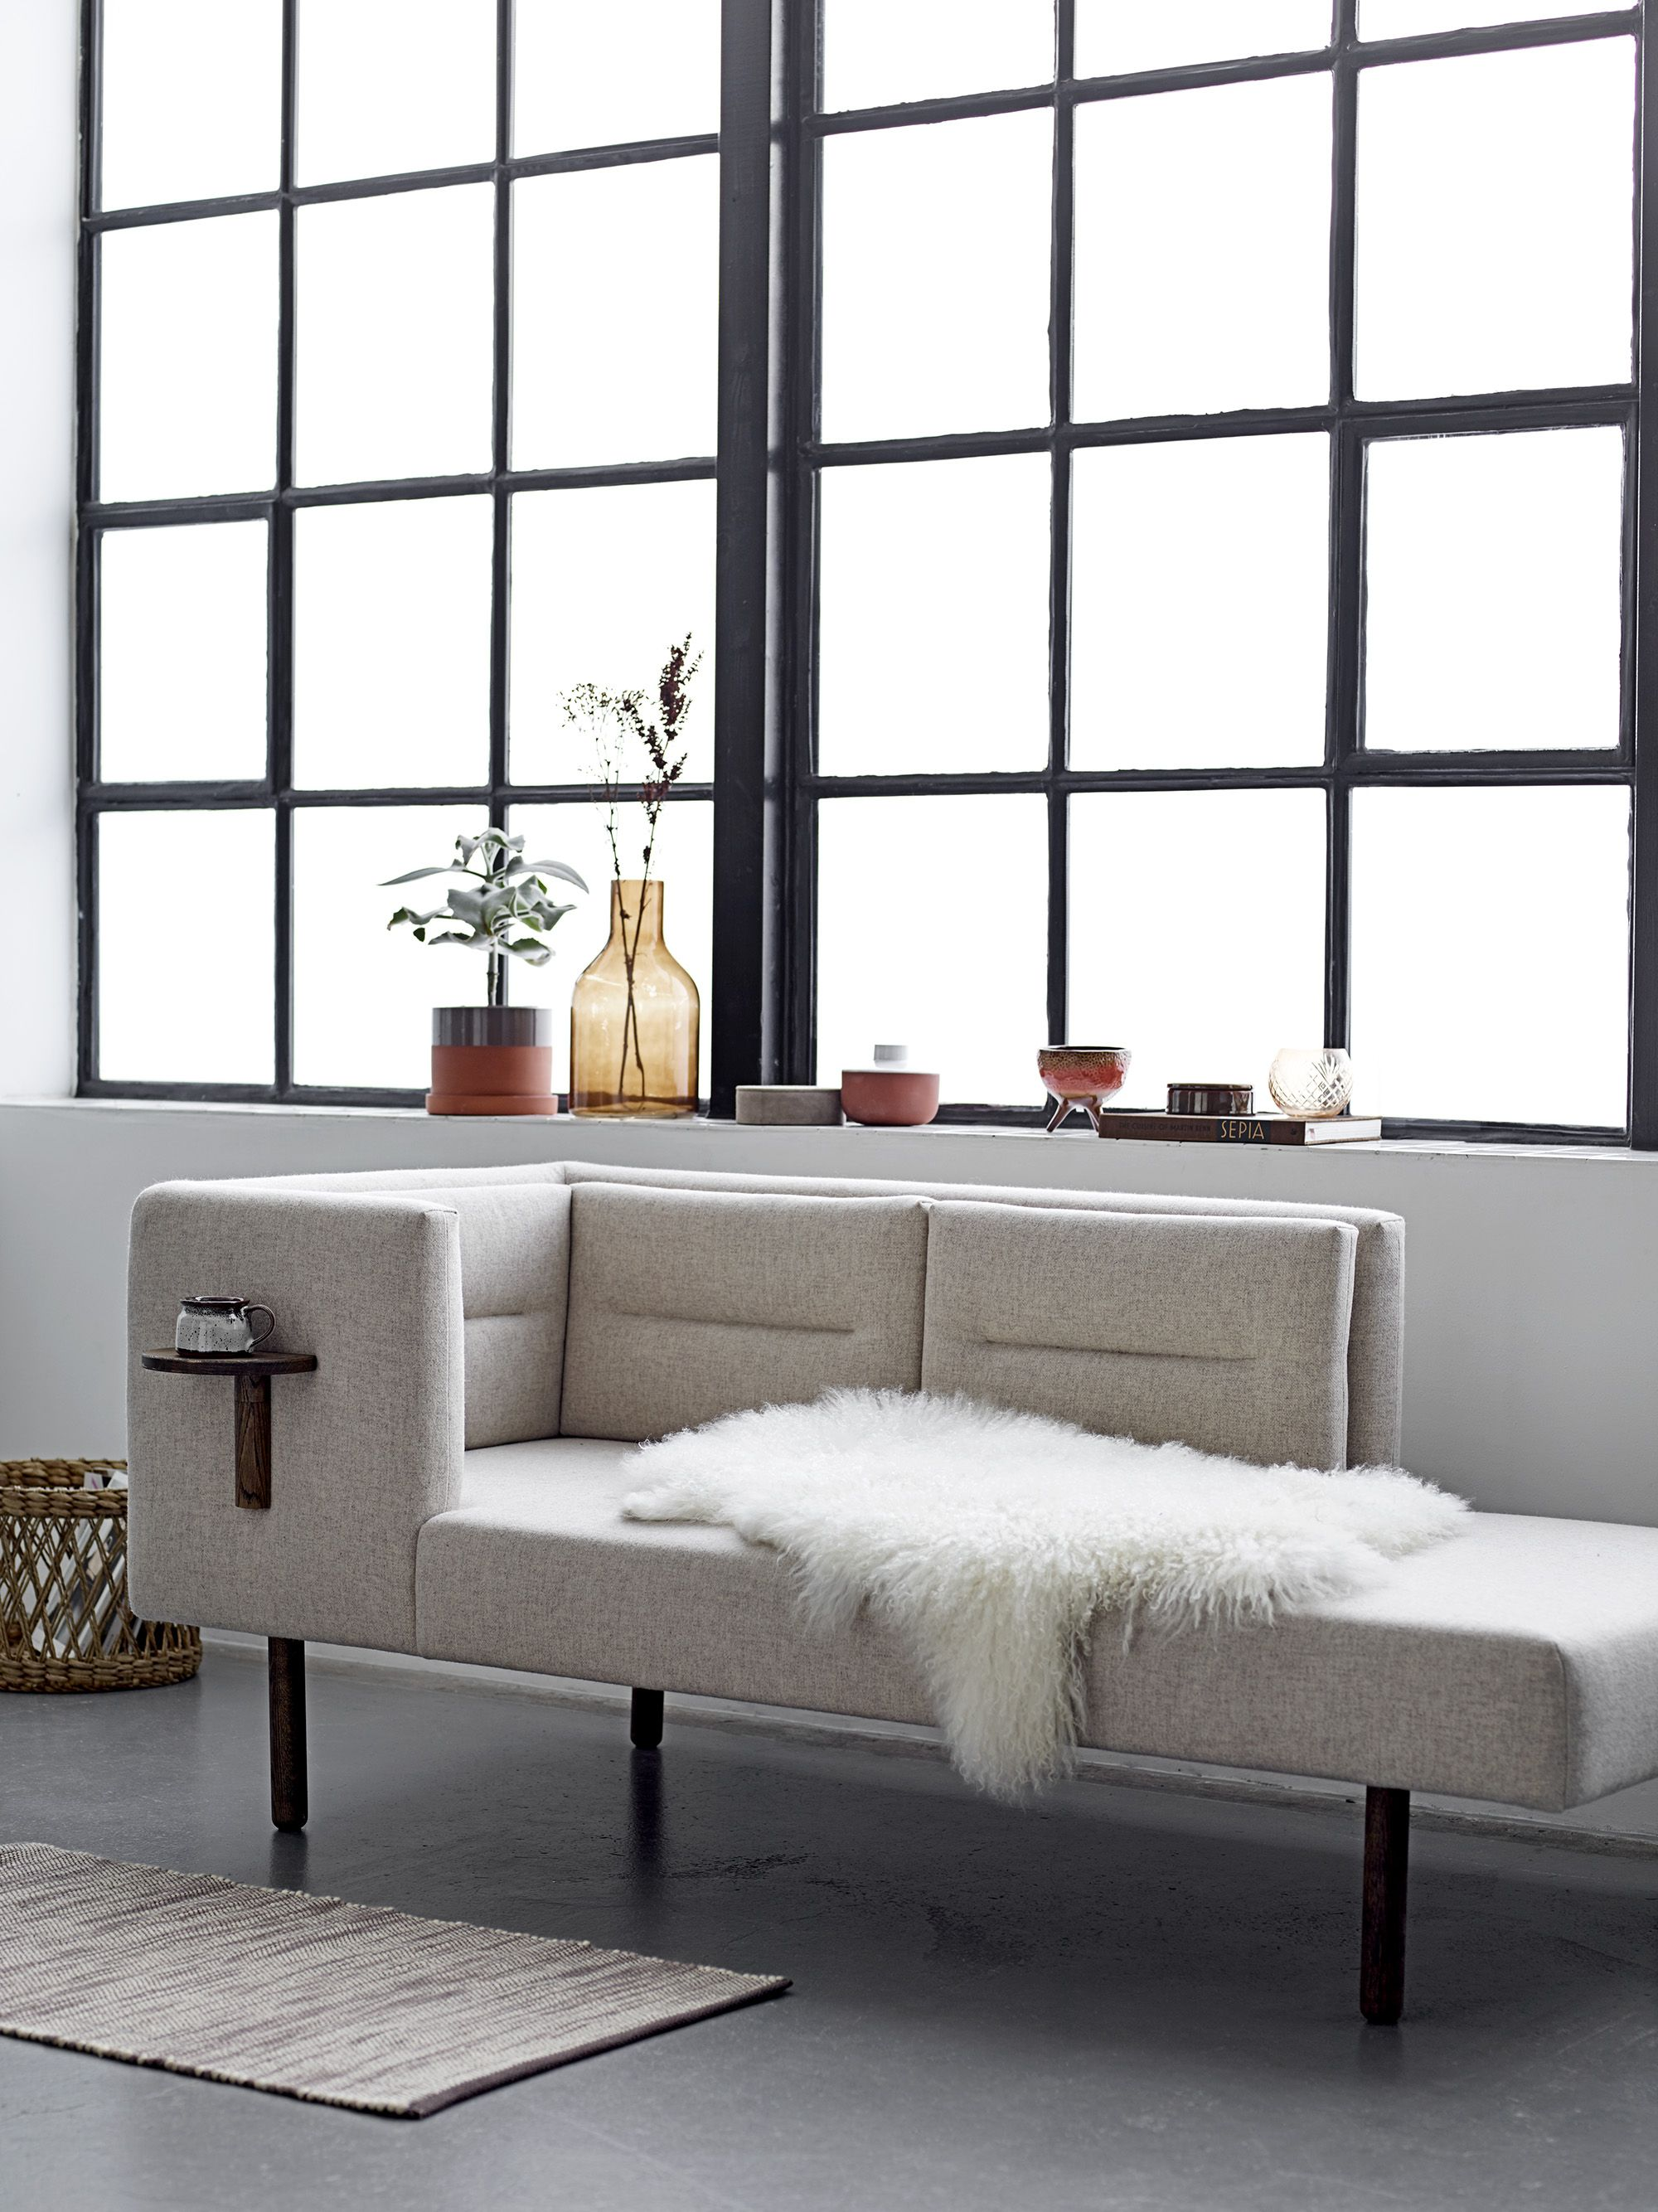 A Daybed Is An Easy Way To Update And Add